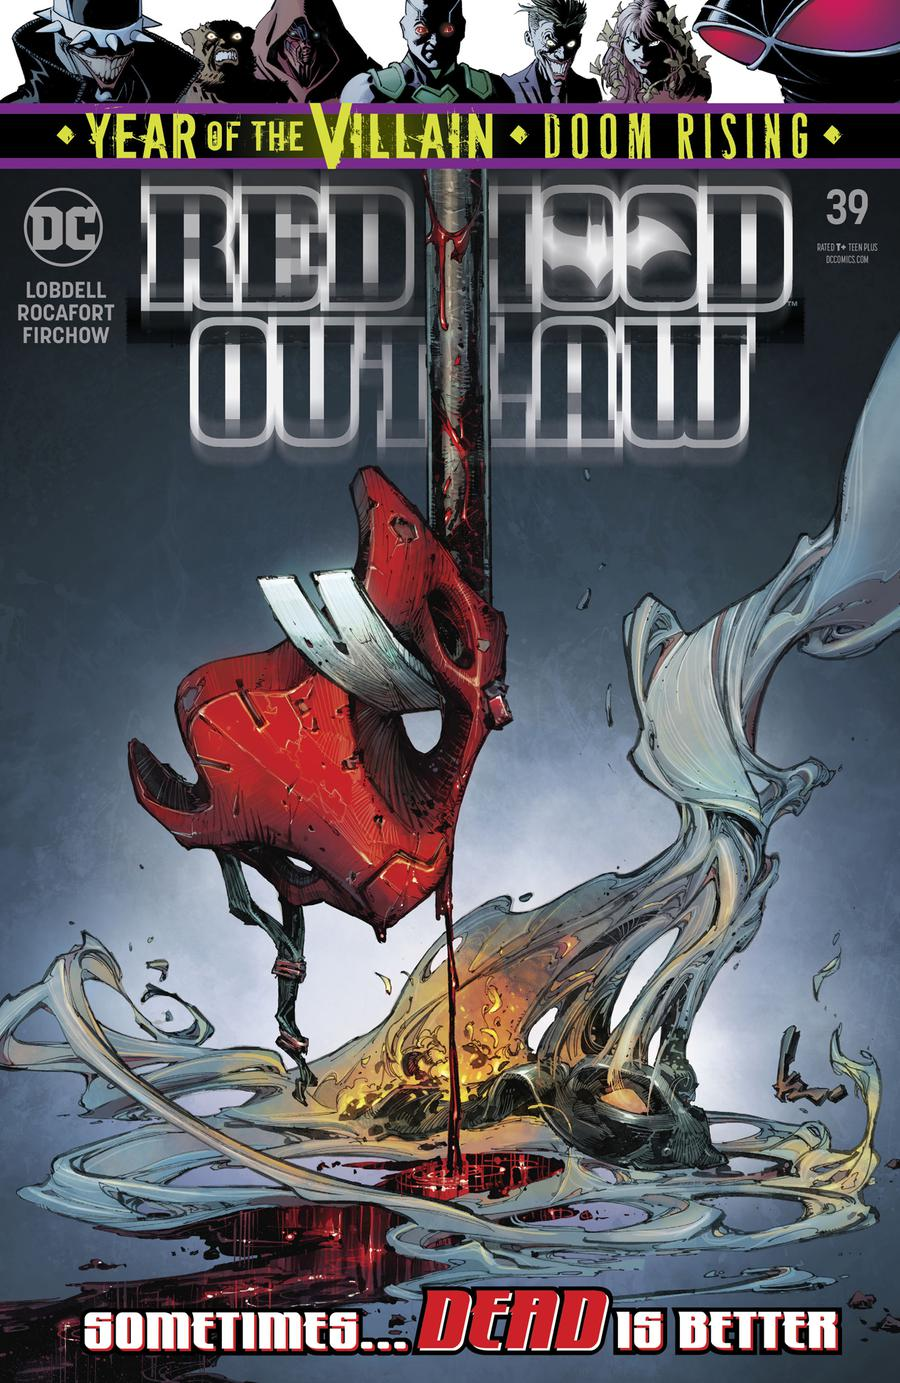 Red Hood Outlaw #39 Cover A Regular Kenneth Rocafort Cover (Year Of The Villain Doom Rising Tie-In)